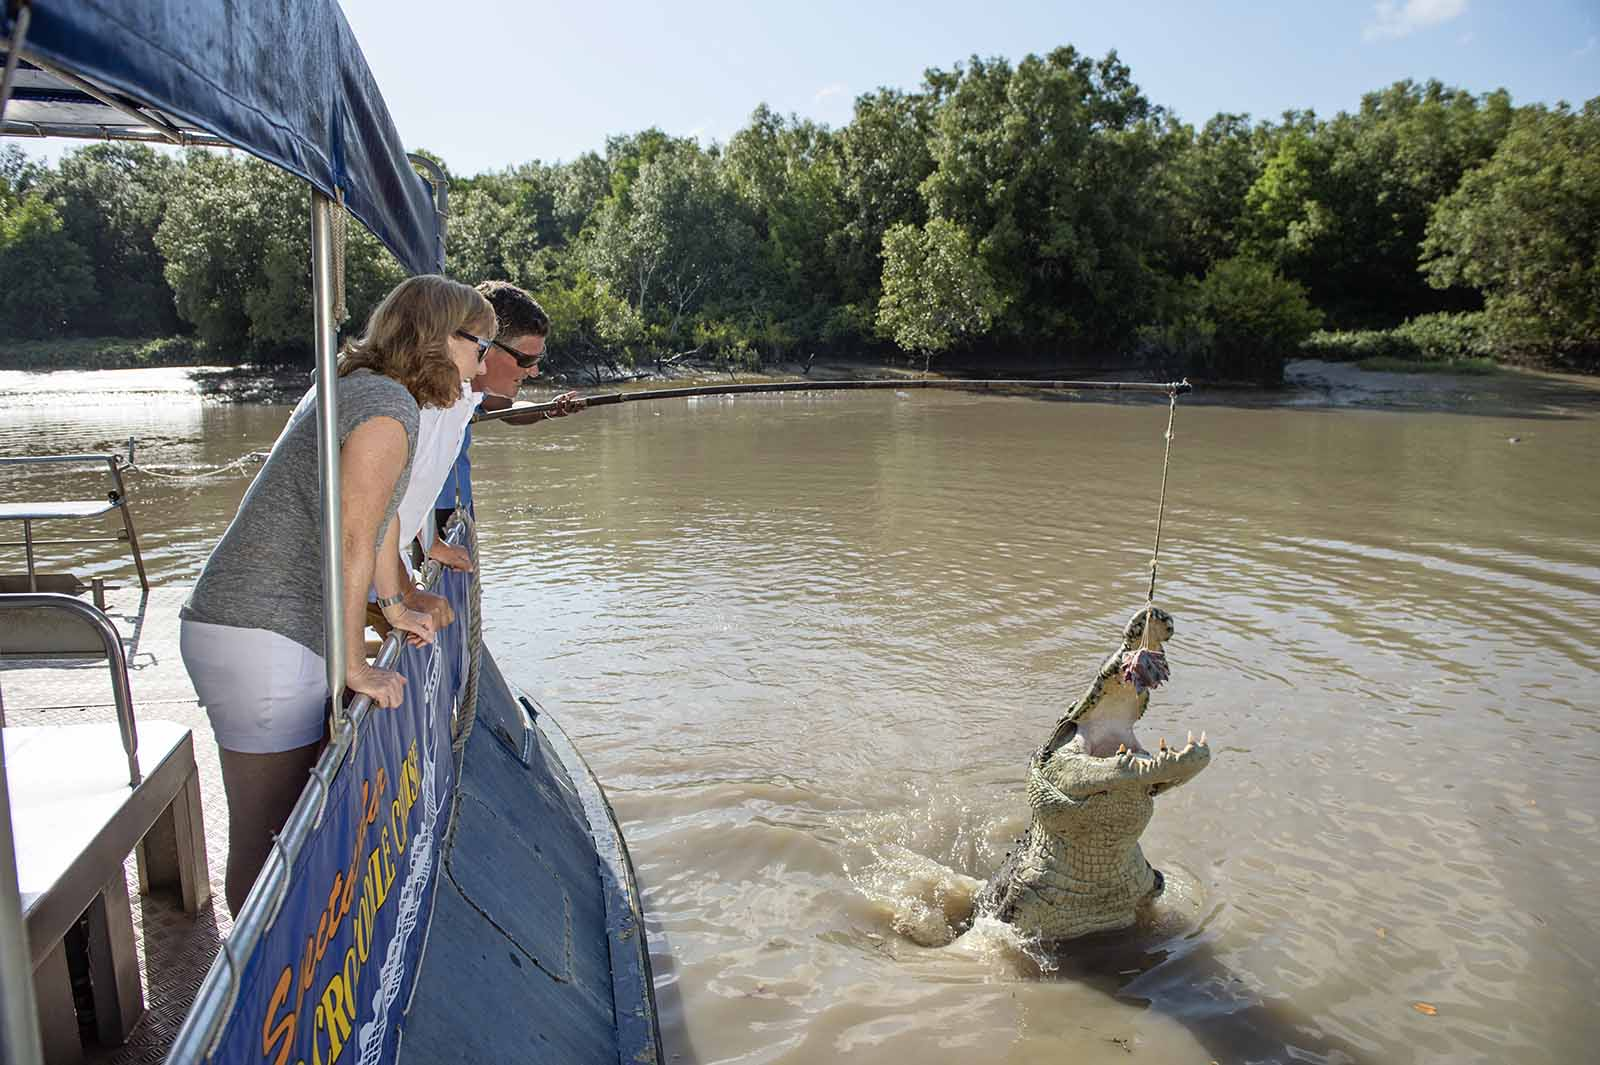 Jumping crocodiles in the wild | Dawn to dusk outdoors in Darwin